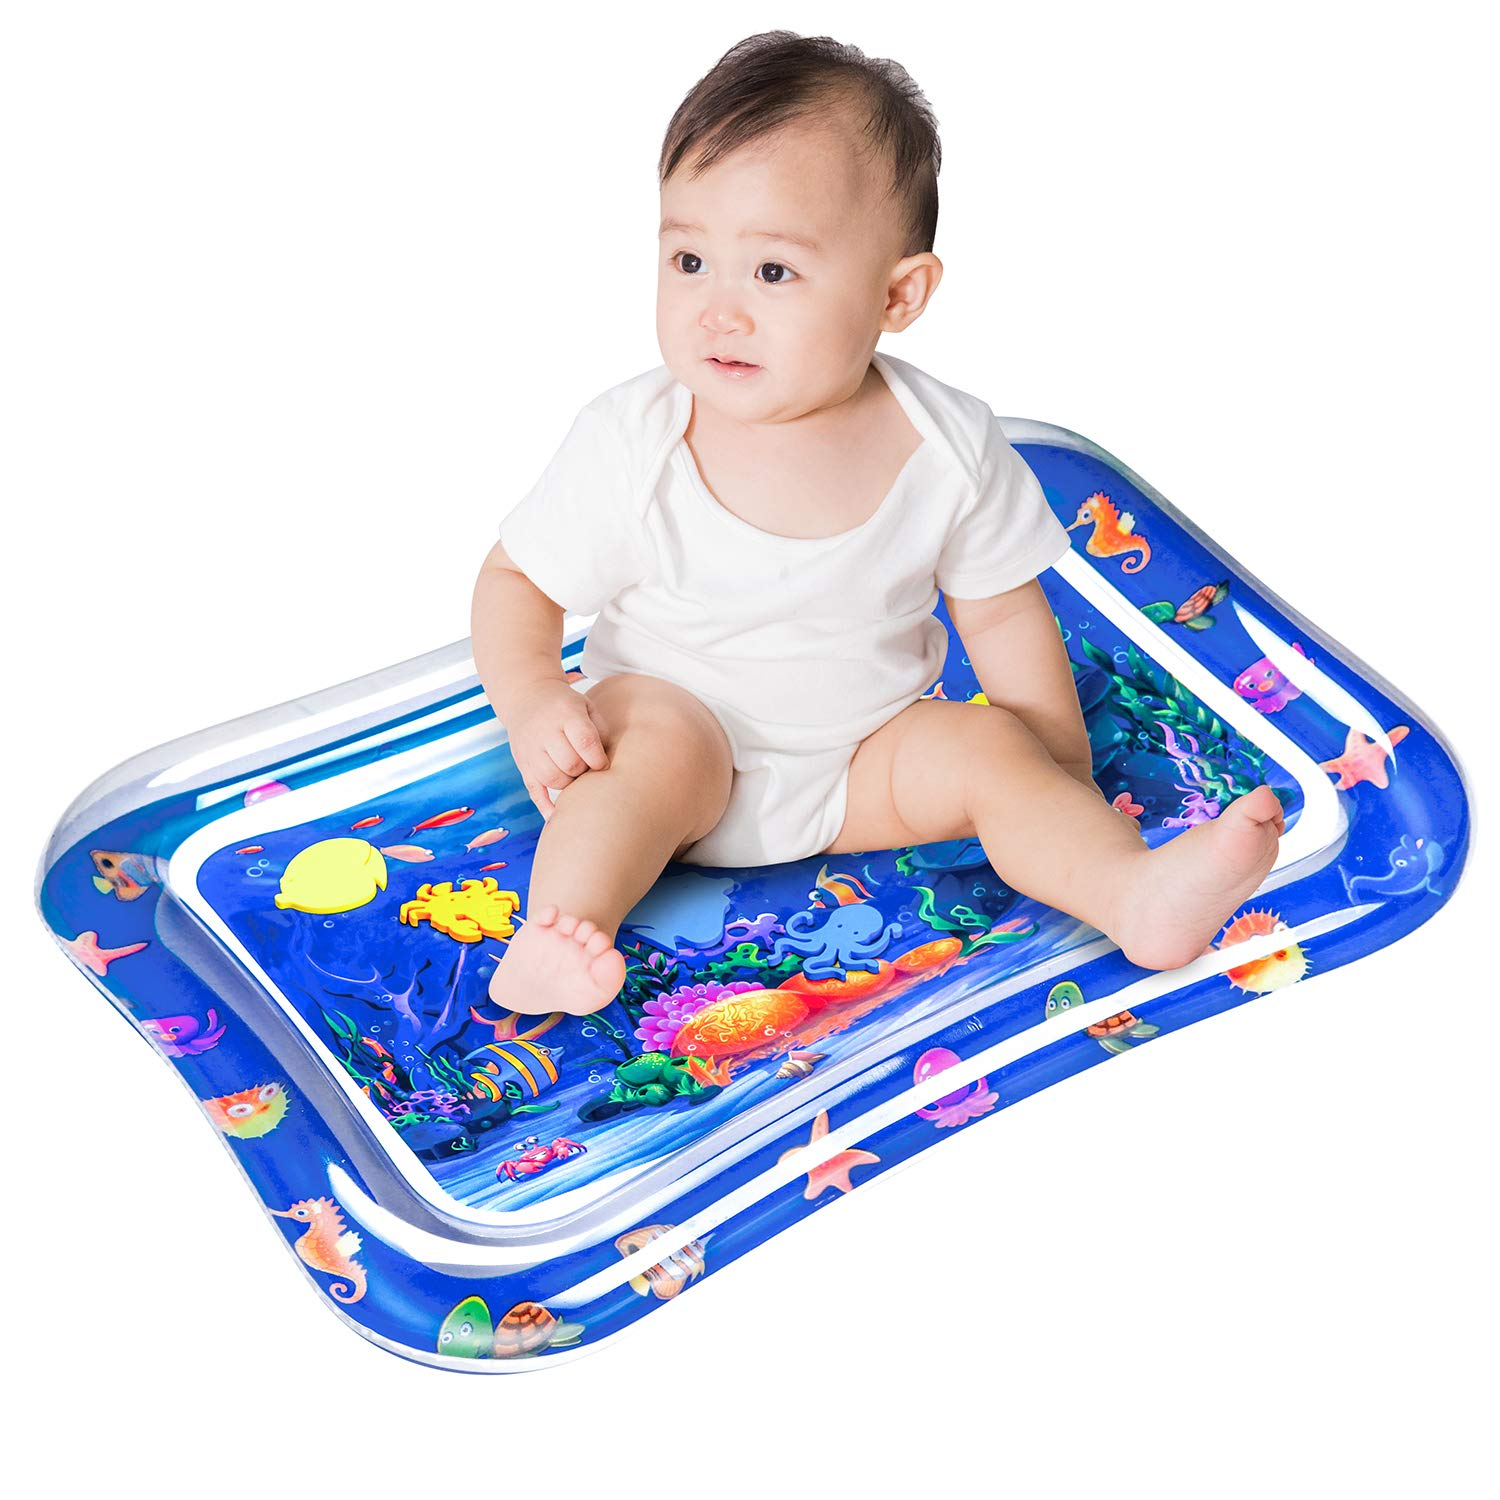 GTF Inflatable Tummy Time Premium Water mat Infants & Toddlers is The Perfect Fun time Play Activity Center Your Baby's Stimulation Growth